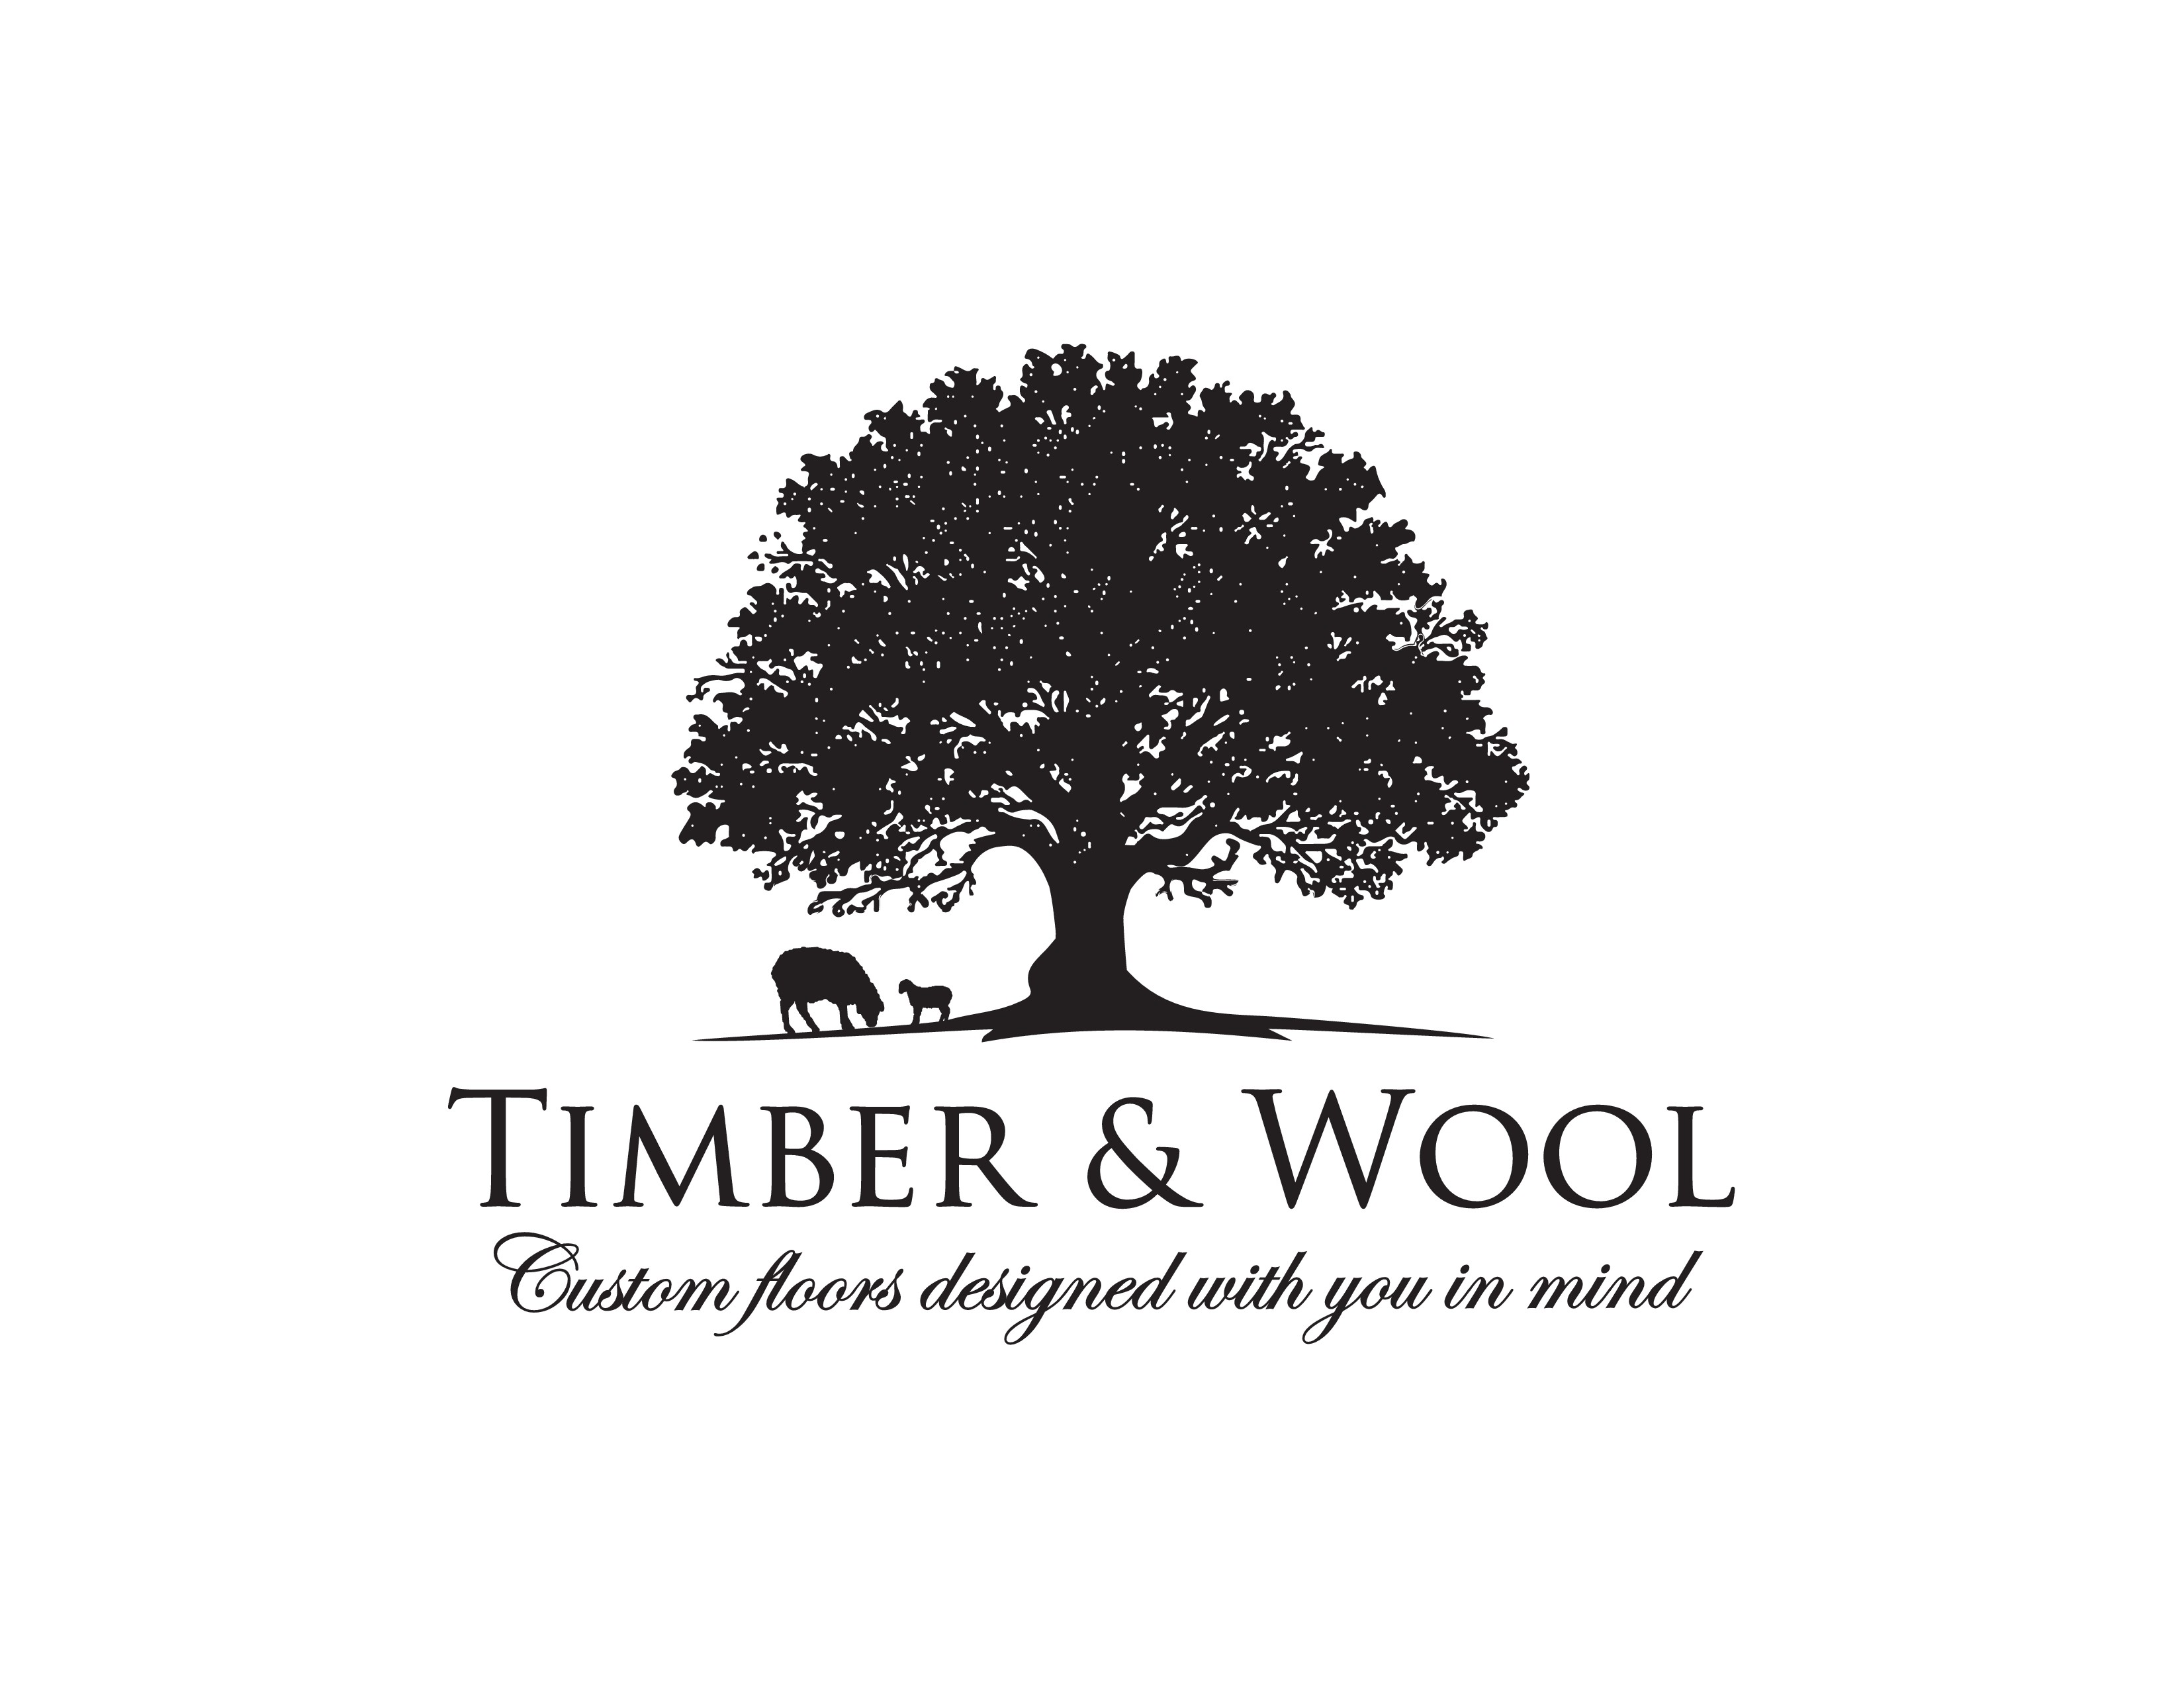 Create a sophisticated, organic logo designed for High-end custom flooring and building materials.